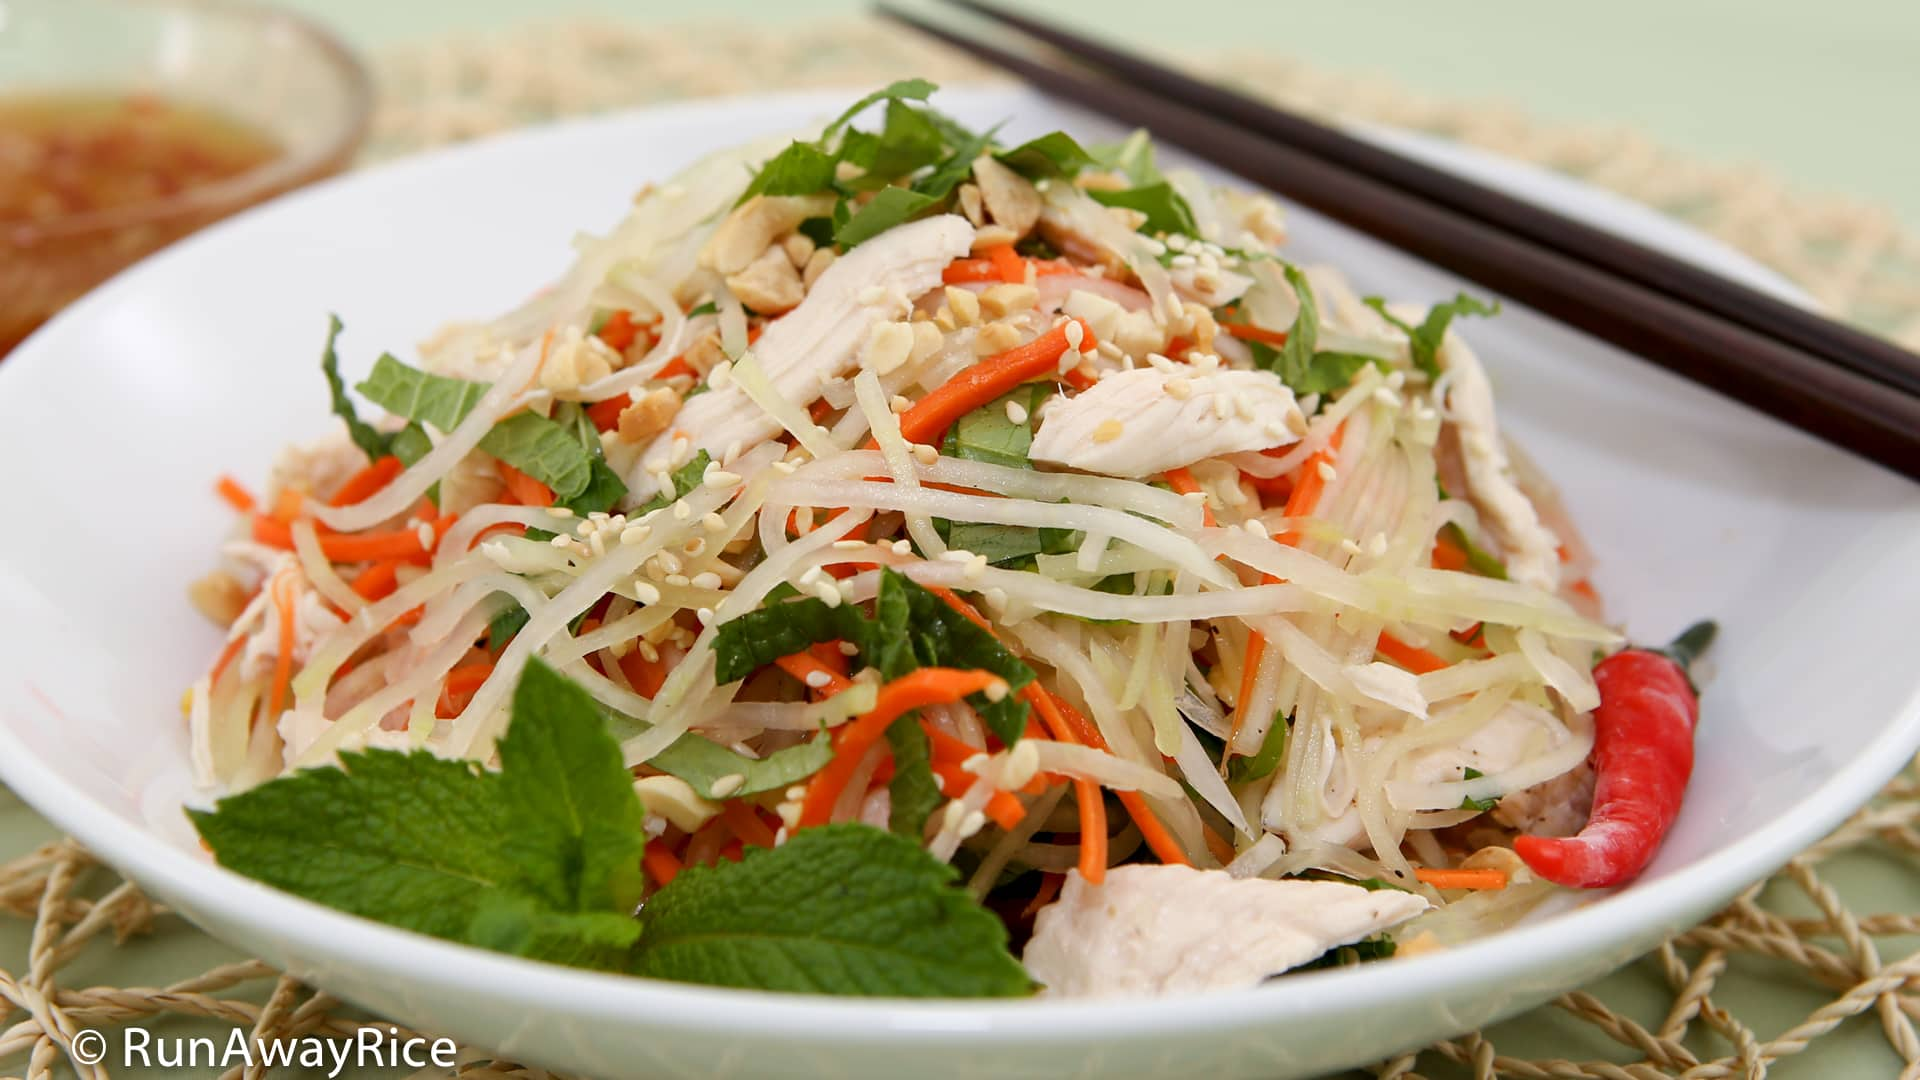 Kohlrabi Chicken Salad (Nom Su Hao Thit Ga) - refreshing and crispy salad with a flavorful dressing | recipe from runawayrice.com